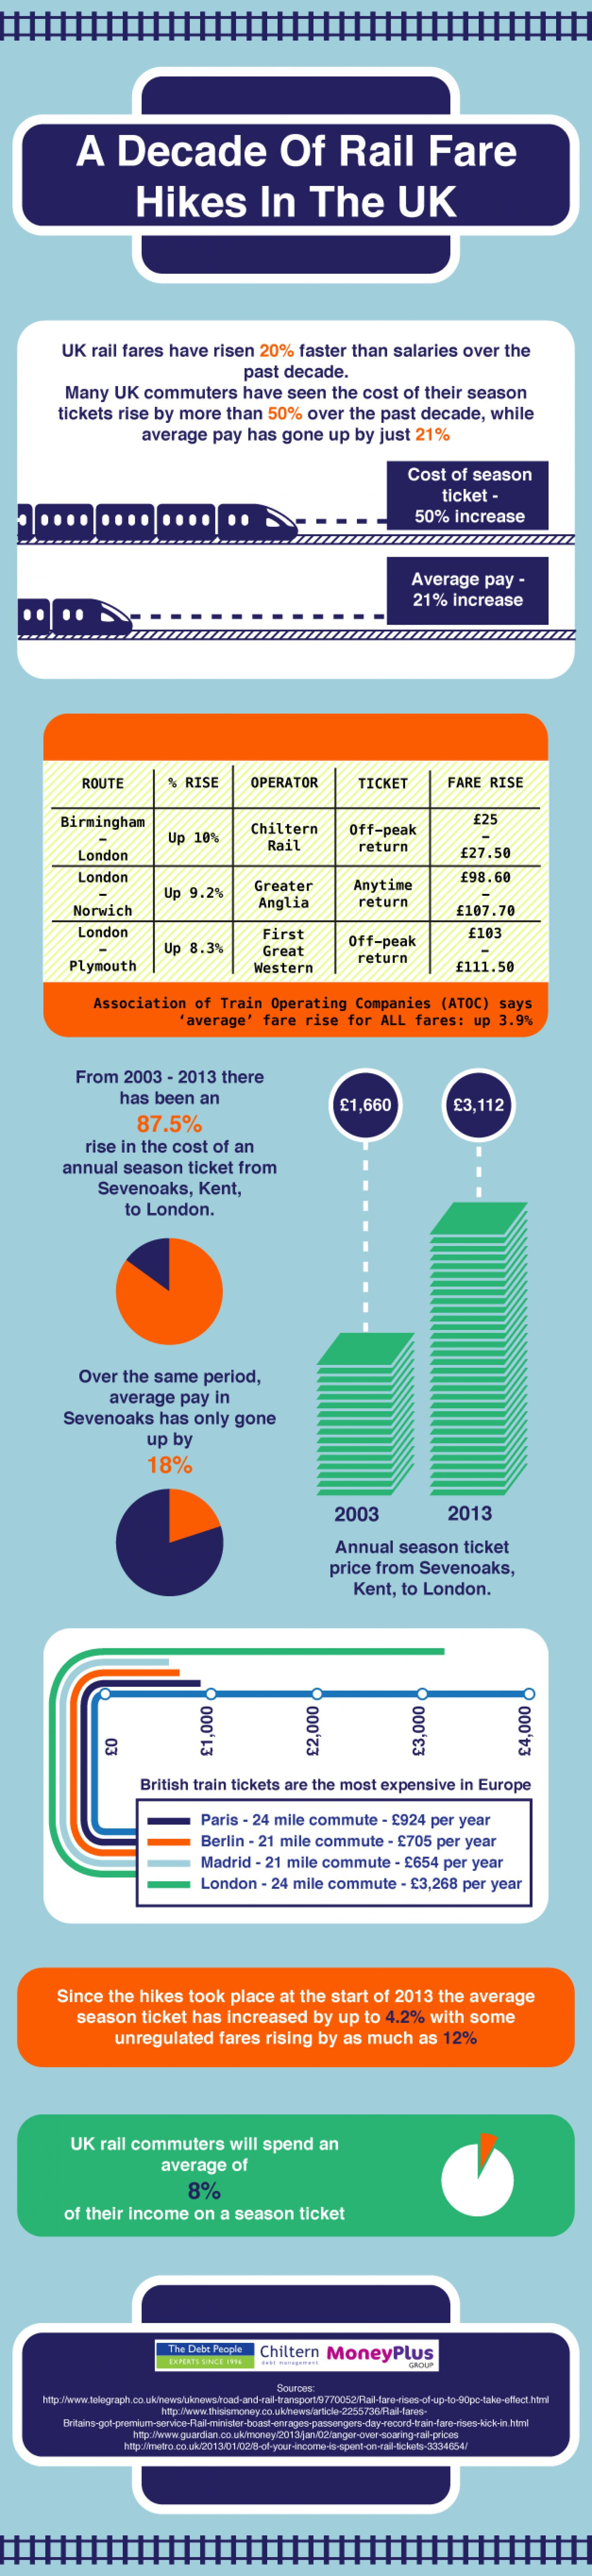 10. A Decade of Rail Fare Hikes In The UK